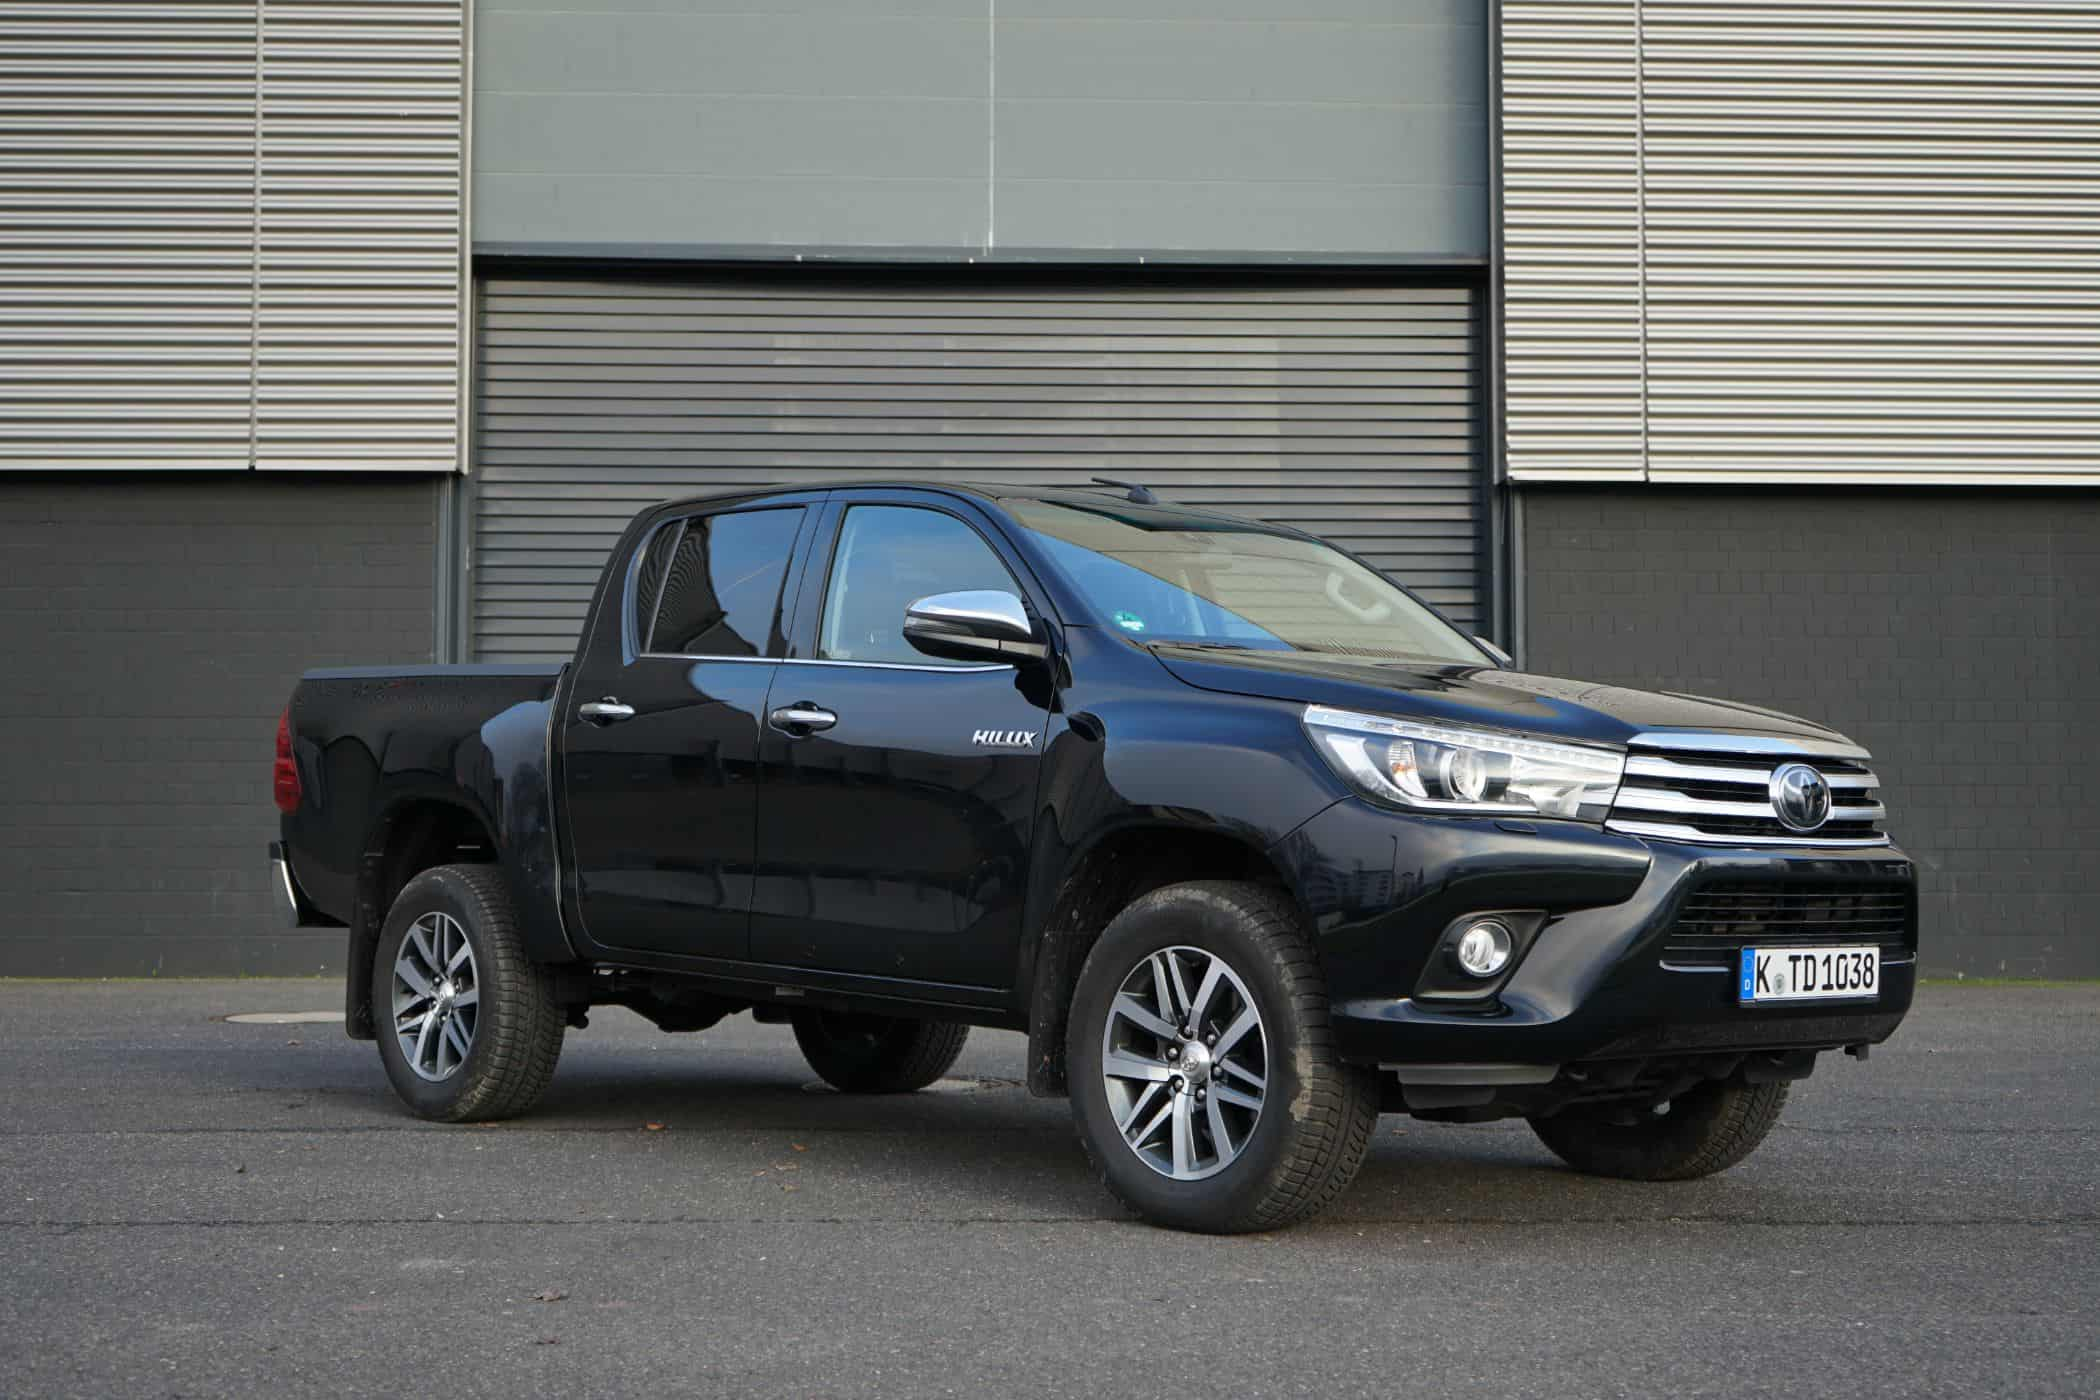 Toyota Hilux - Automobile Legende in der 8. Generation